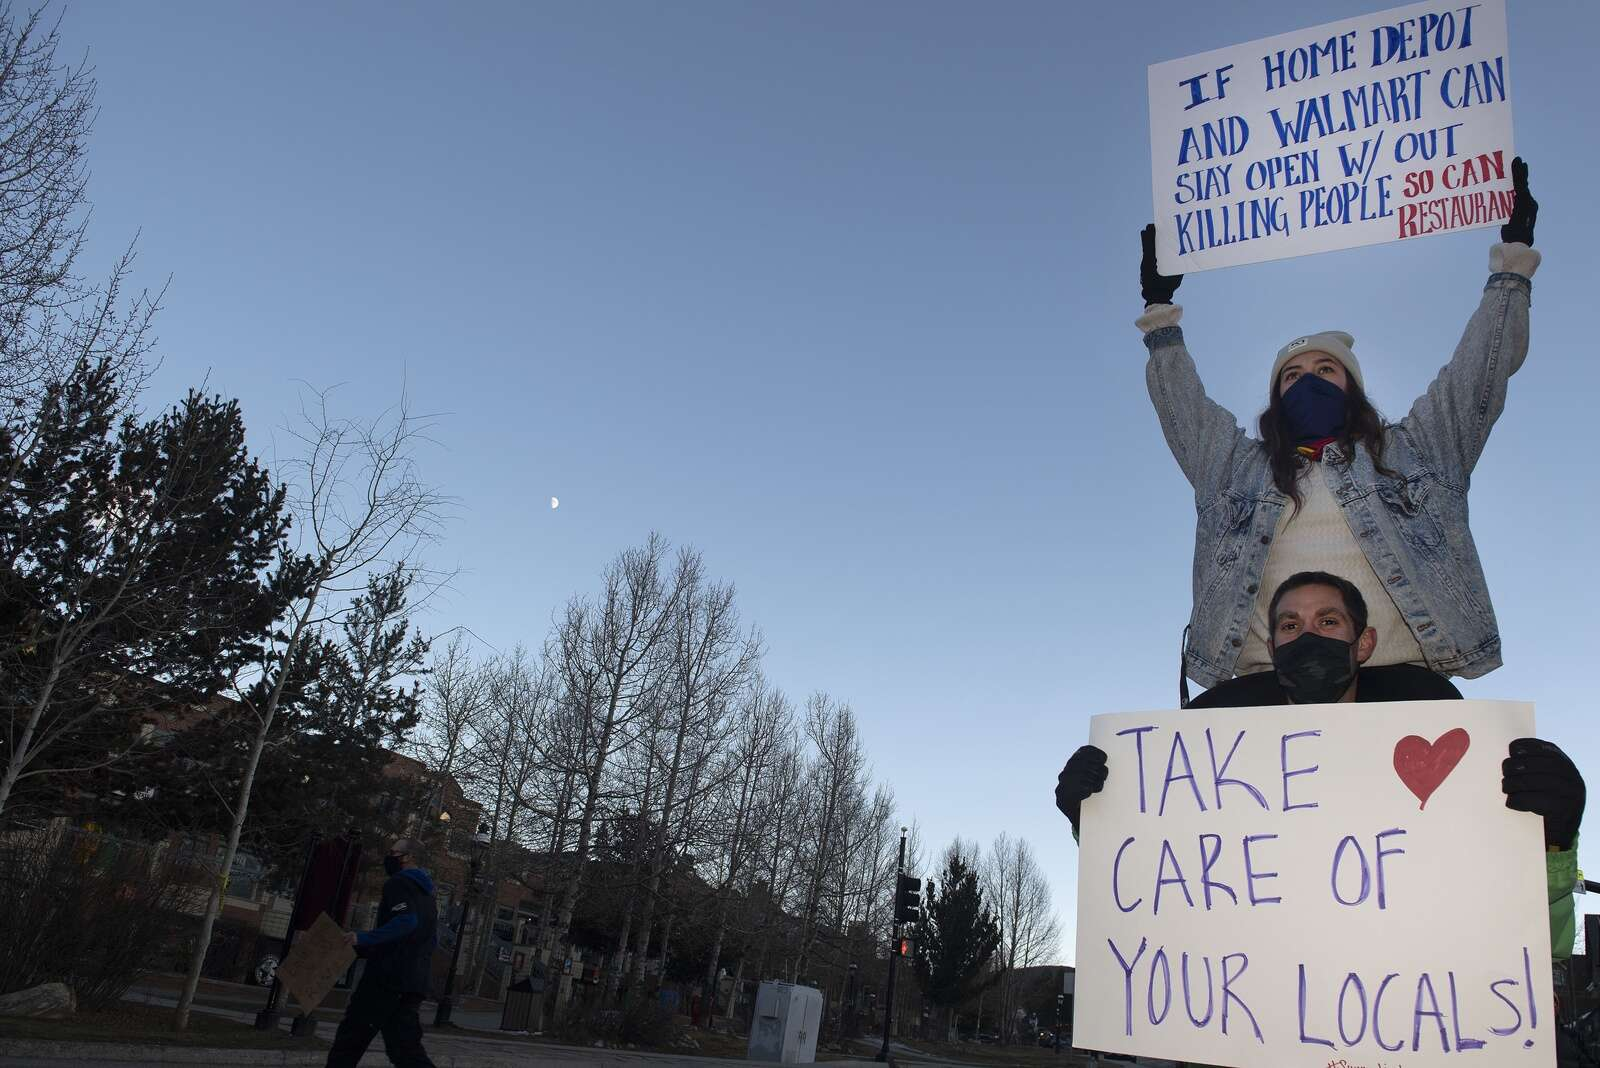 Ginger Perez, an employee at Downstairs at Eric's in Breckenridge, sits on the shoulders of Kyle Rocco on Monday, Nov. 23, while protesting the prohibition of in-person dining at restaurants.